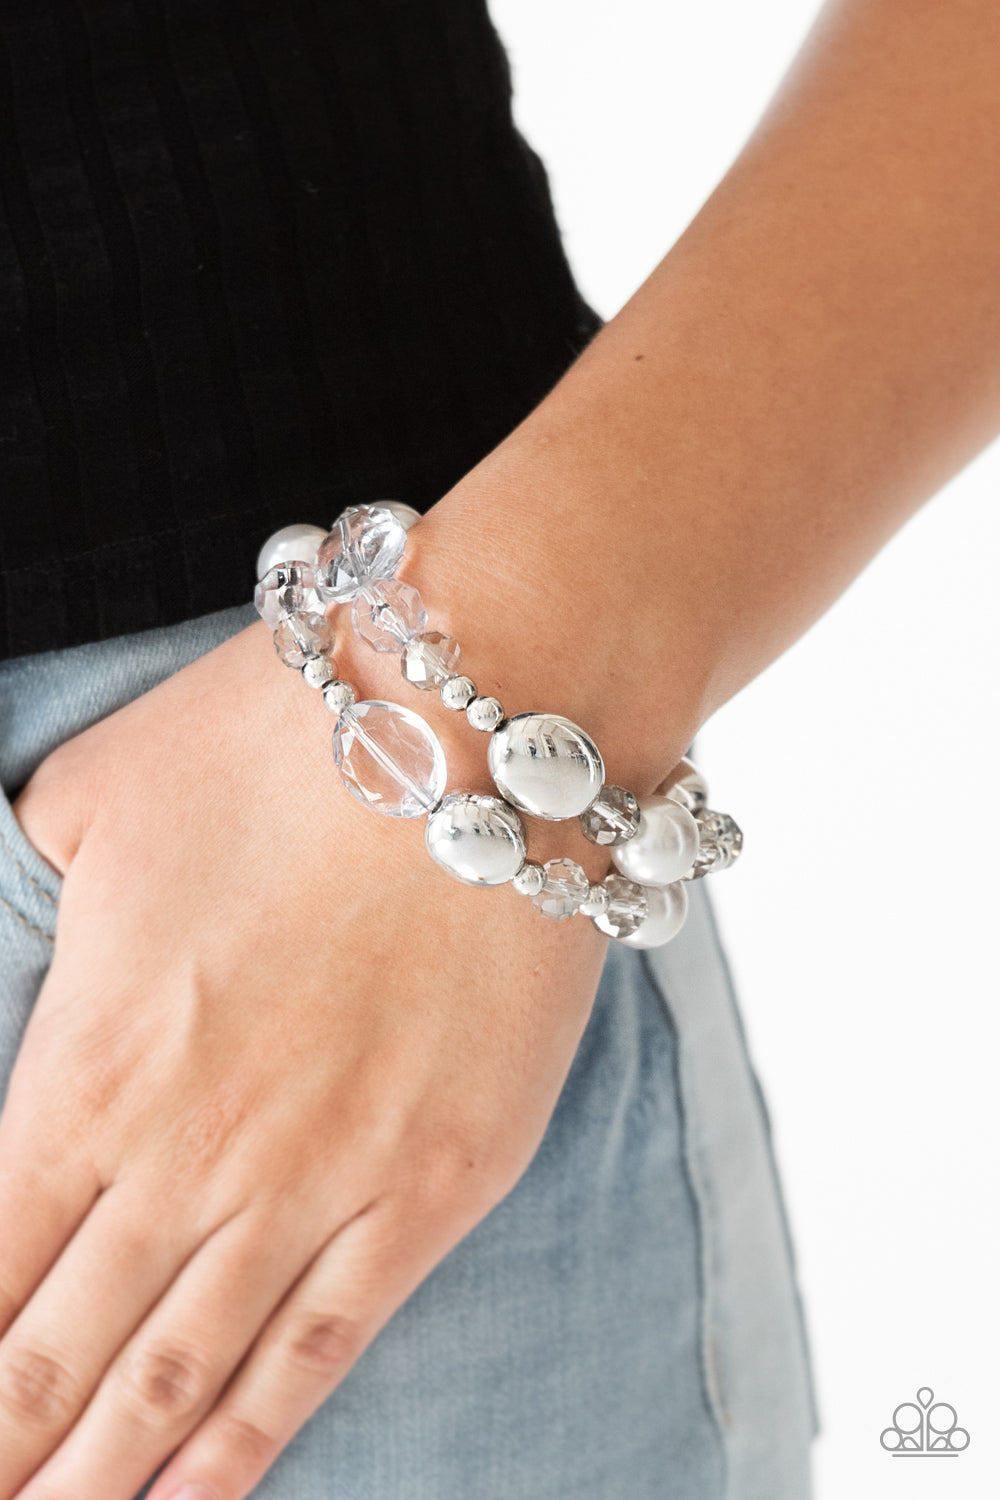 Paparazzi Jewelry & Accessories - Downtown Dazzle - Silver Bracelet. Bling By Titia Boutique